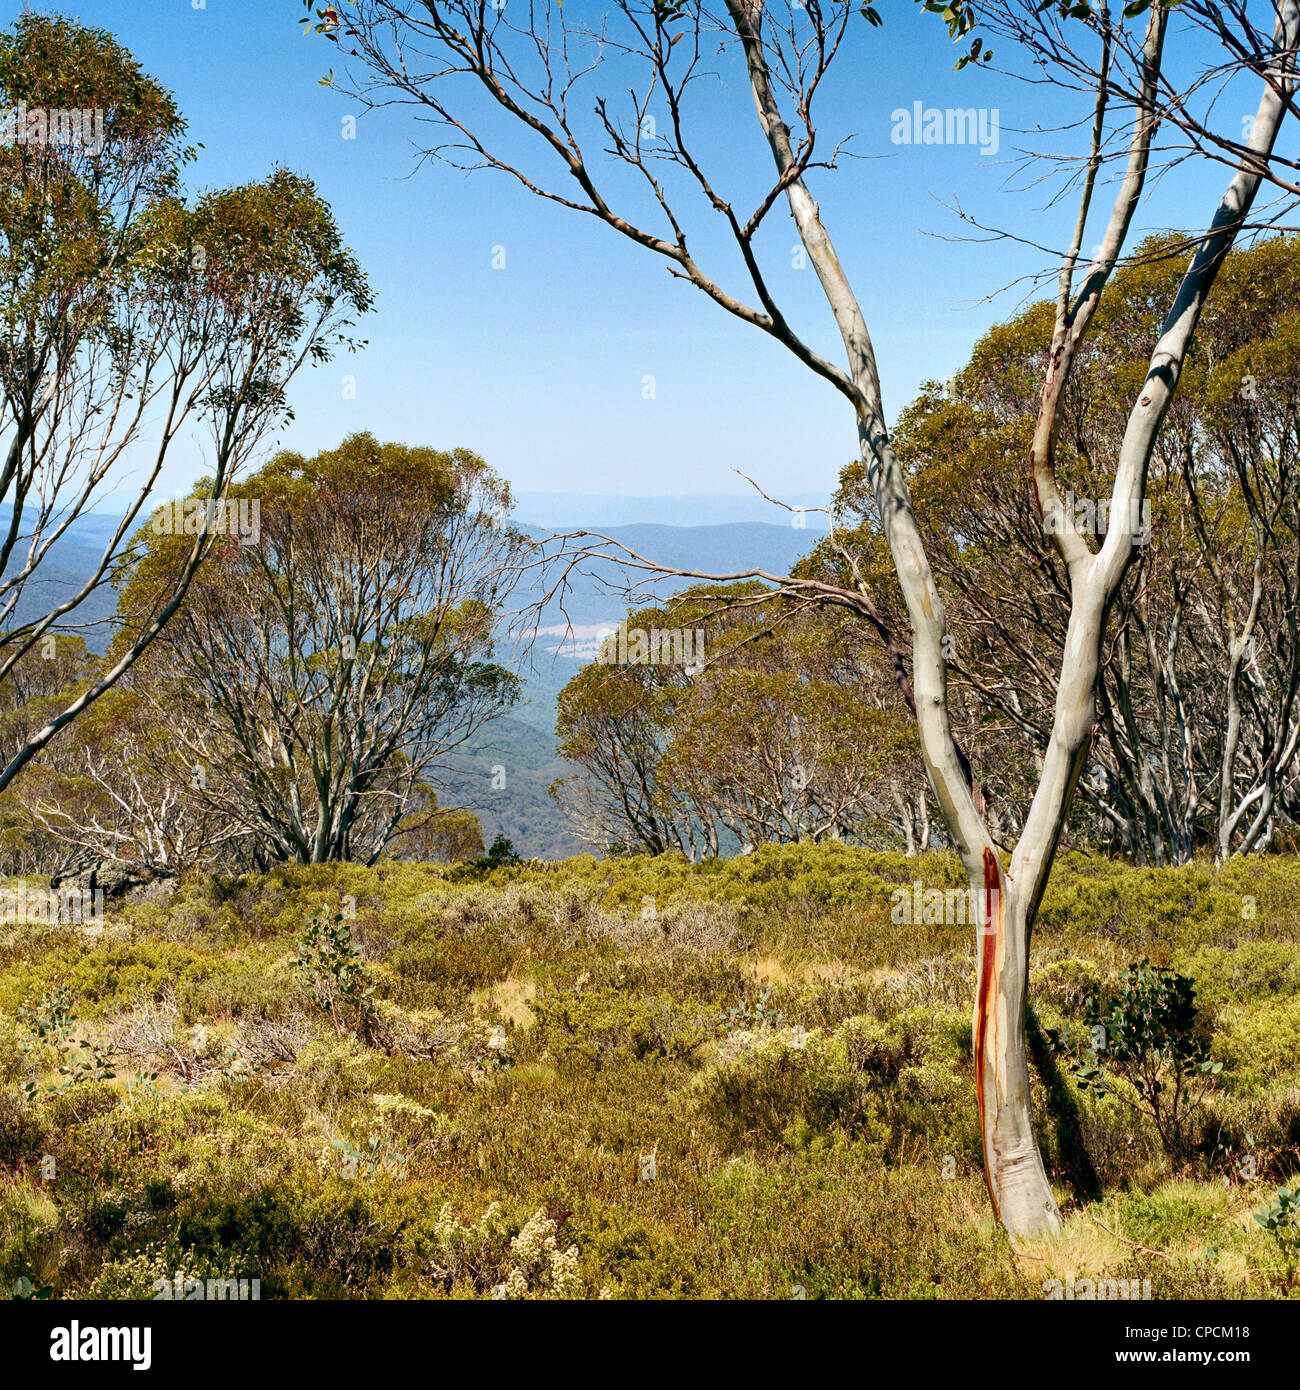 Snow gum and scrubby vegetation in the Victorian High Country Australia - Stock Image